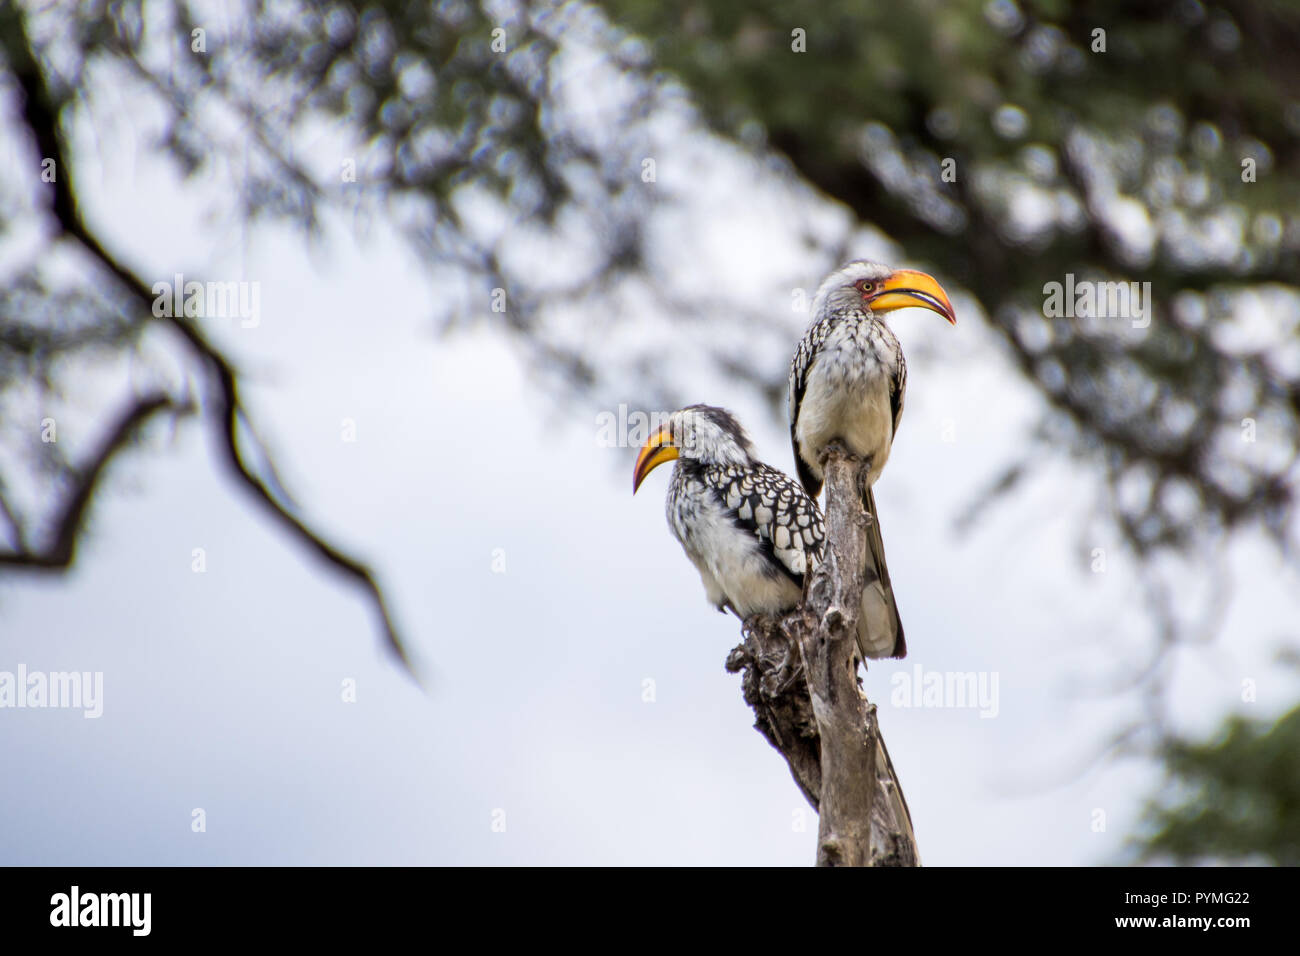 Two Southern Yellow-billed Hornbills sitting on branch. Birds with pale underparts and spotted wings and large yellow bills. - Stock Image